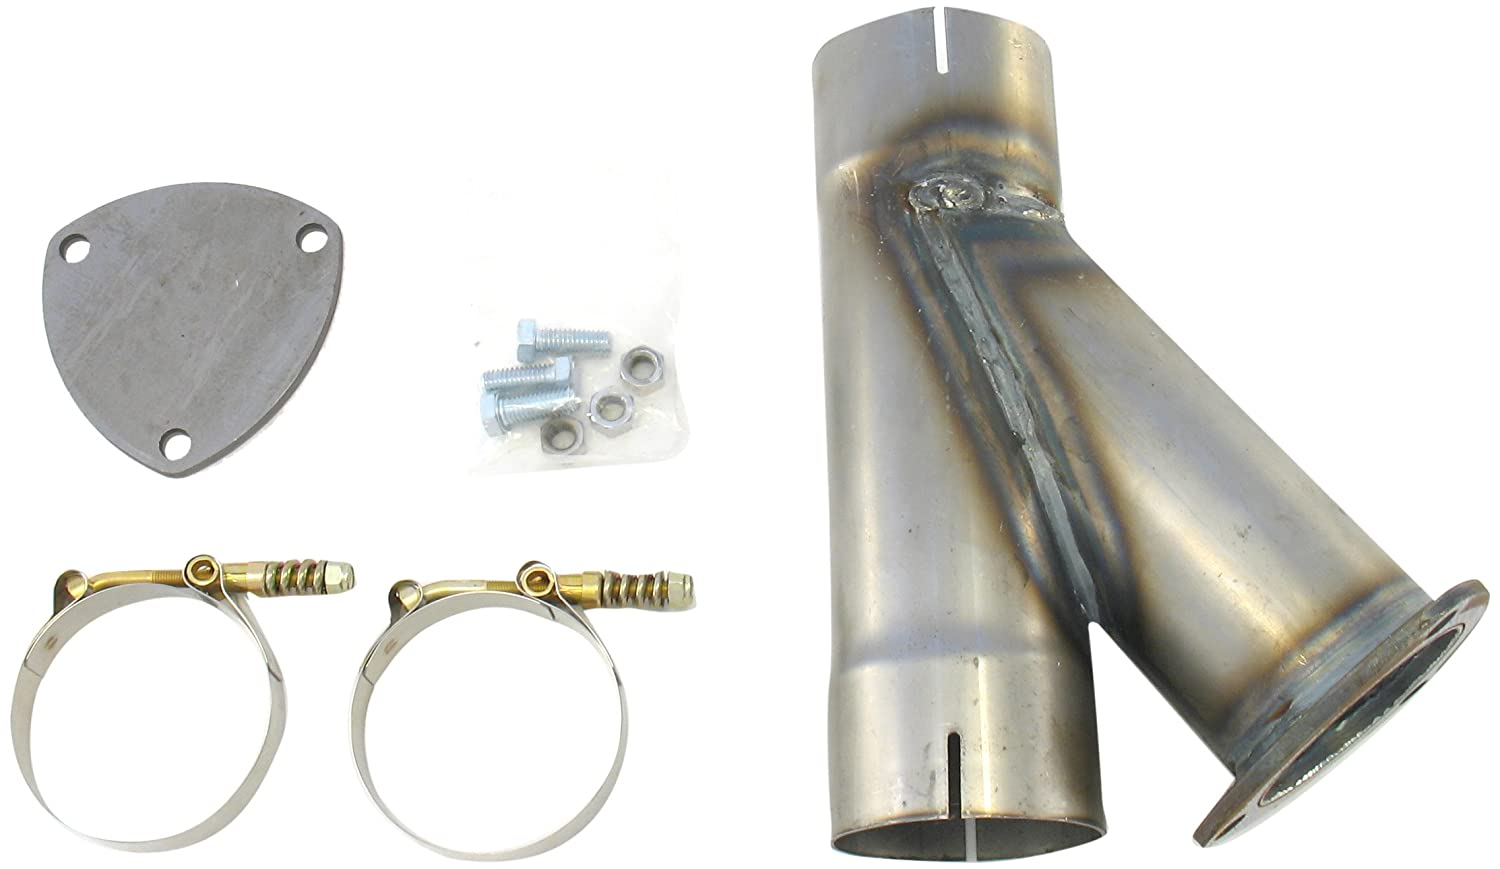 71EAjFbT4jL._SL1500_ amazon com patriot exhaust h1133 3\